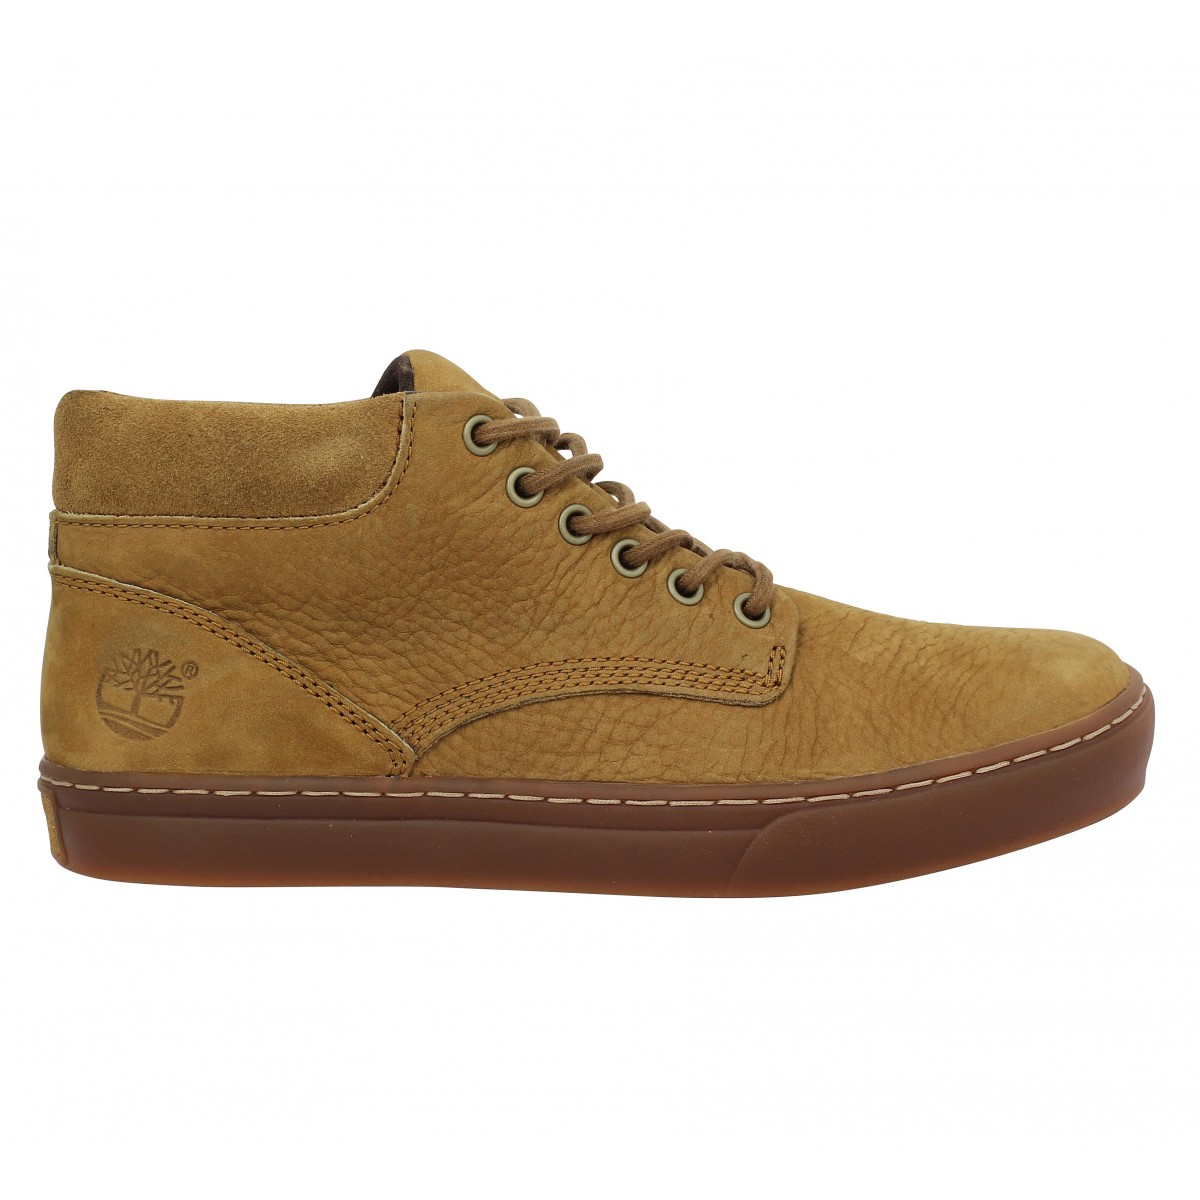 2 Homme Marron Cuir 0 Chukka Adventure Timberland Cupsole PO7qYw56y6